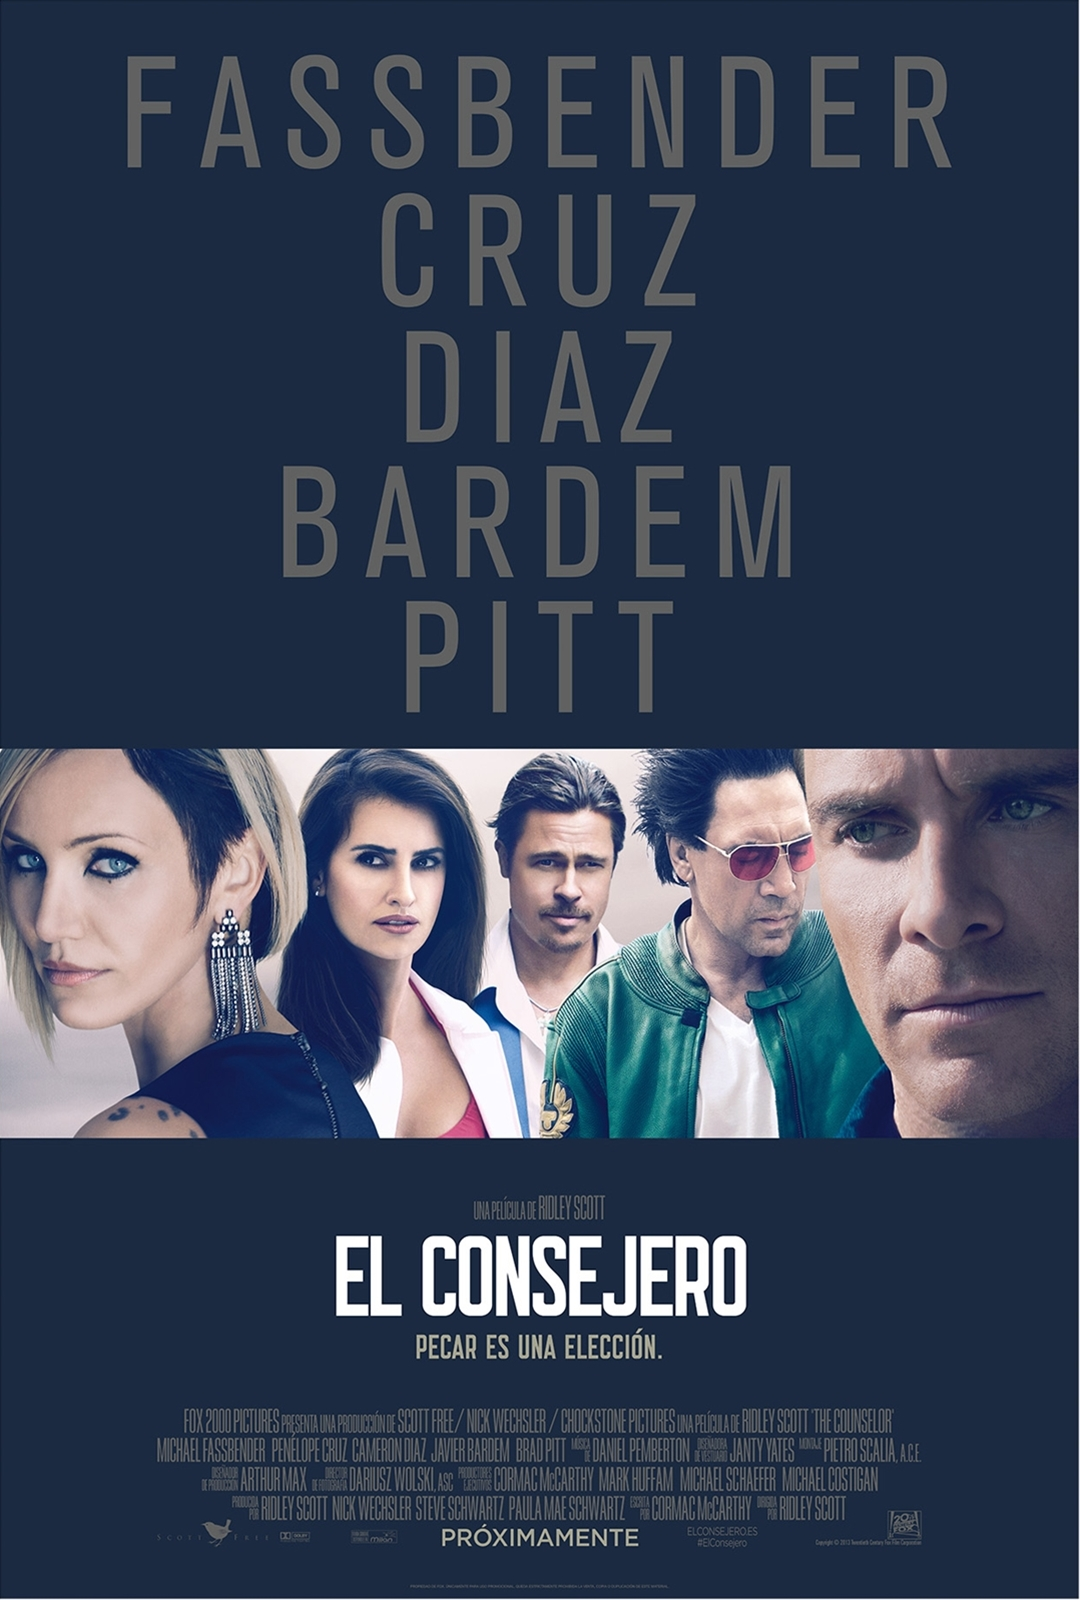 El consejero (The Counselor)